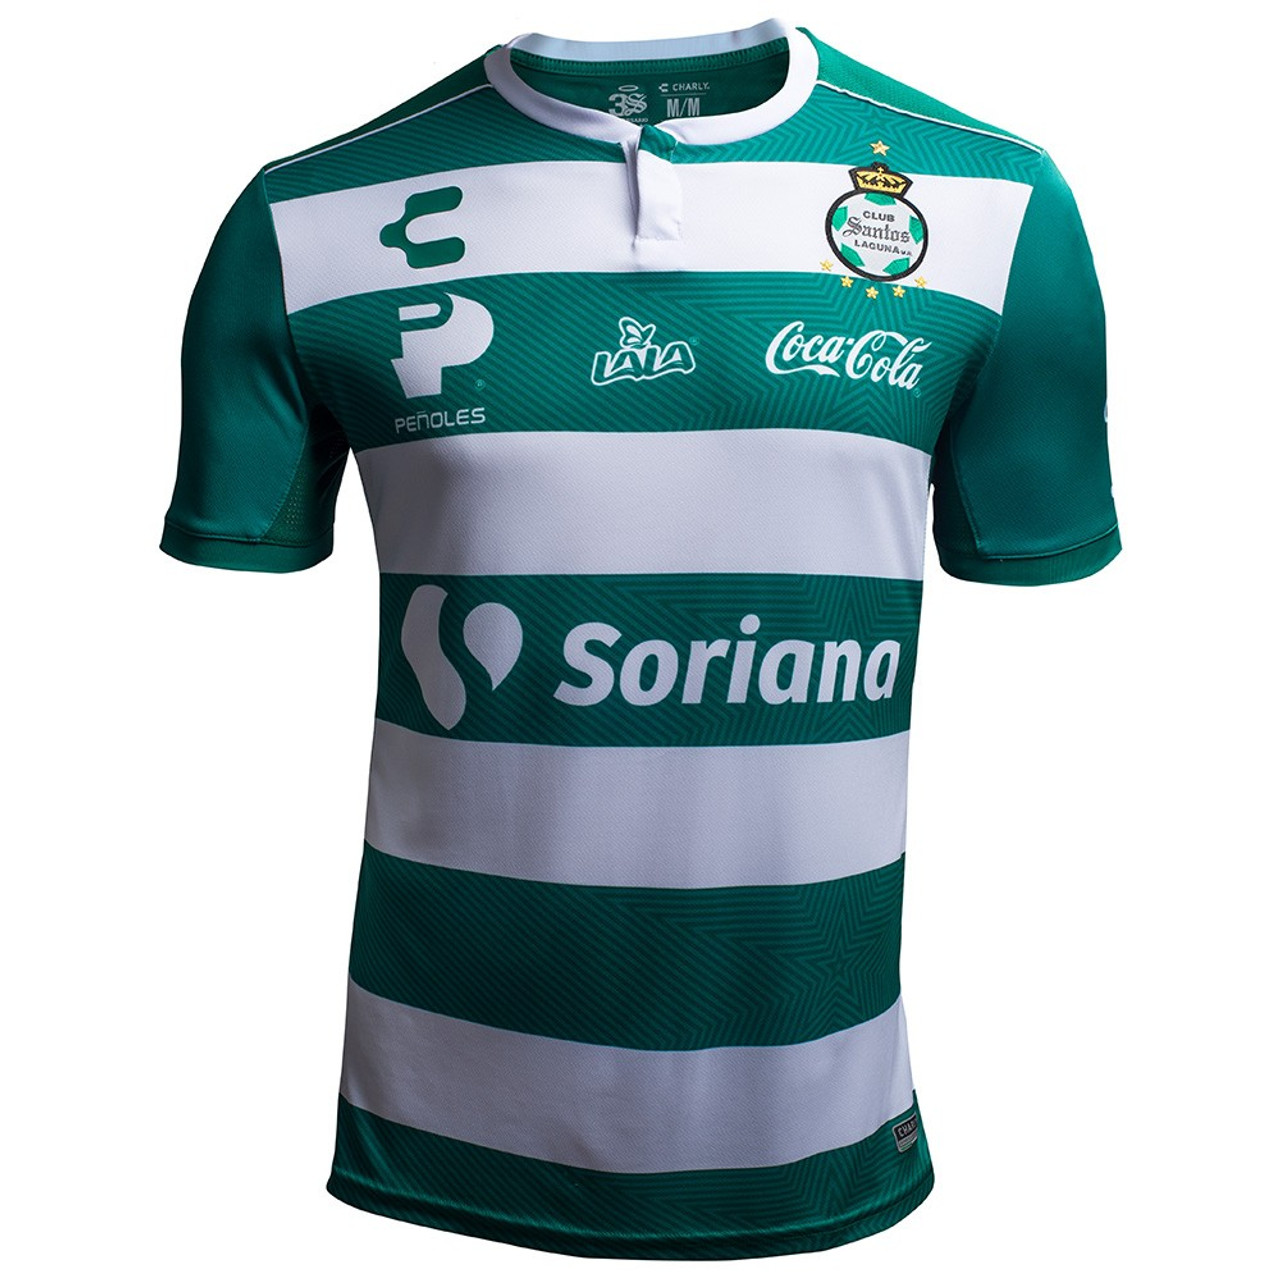 62ba7502549 CHARLY SANTOS LAGUNA 2019 HOME JERSEY - Soccer Plus